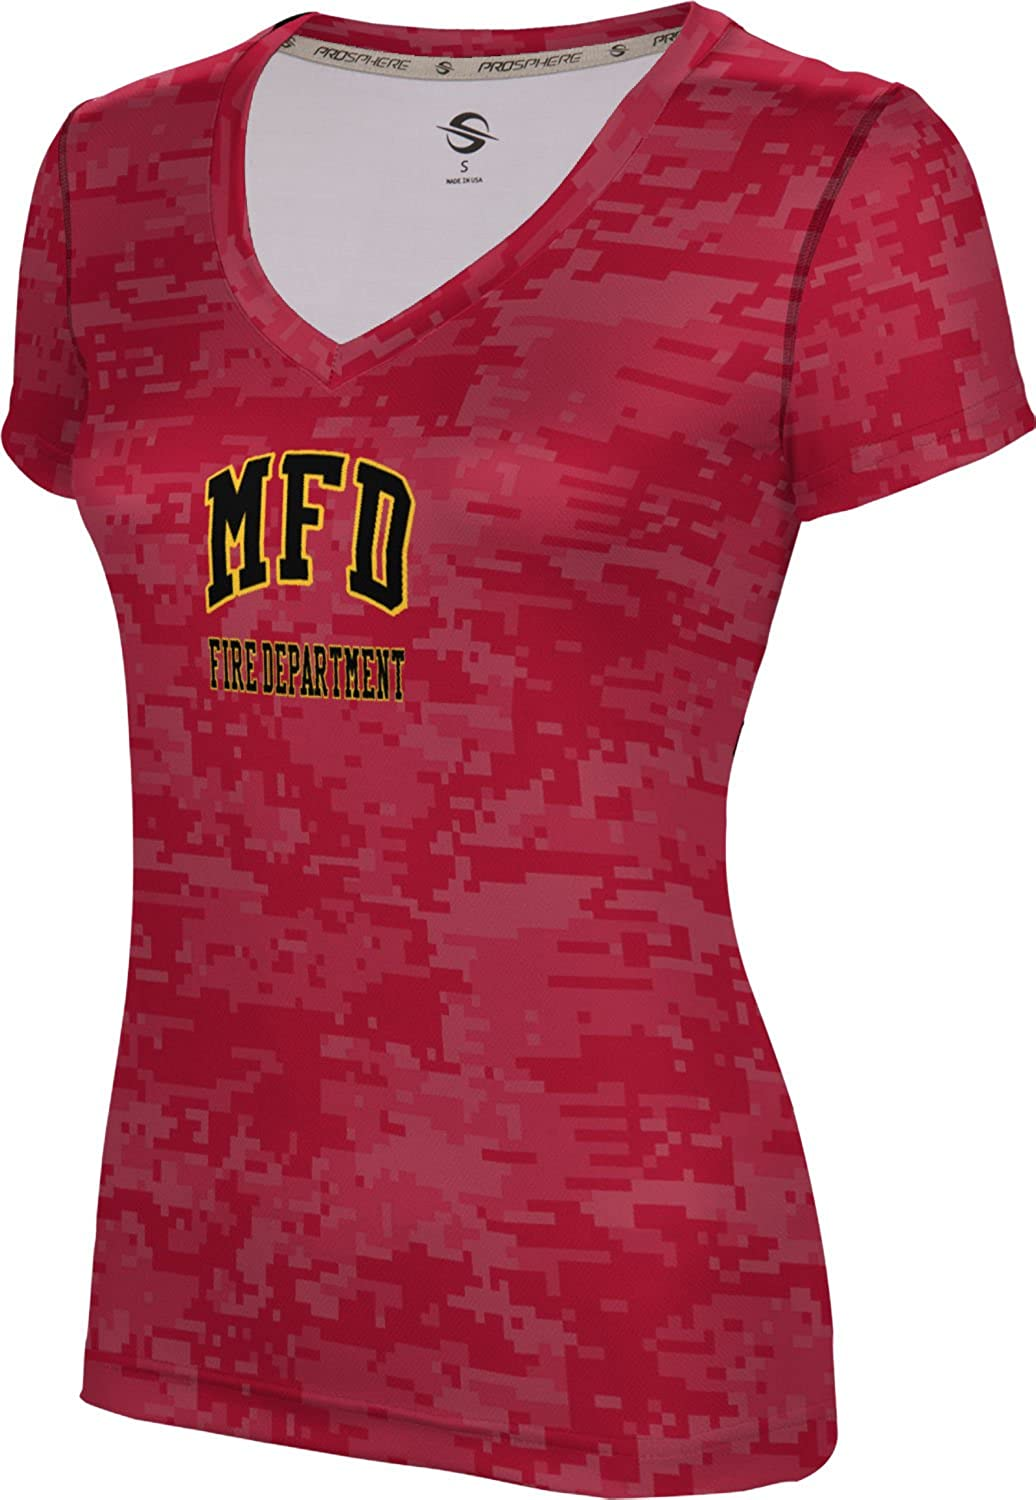 ProSphere Women's Meridian Fire Department Digital SL V-Neck Training Tee